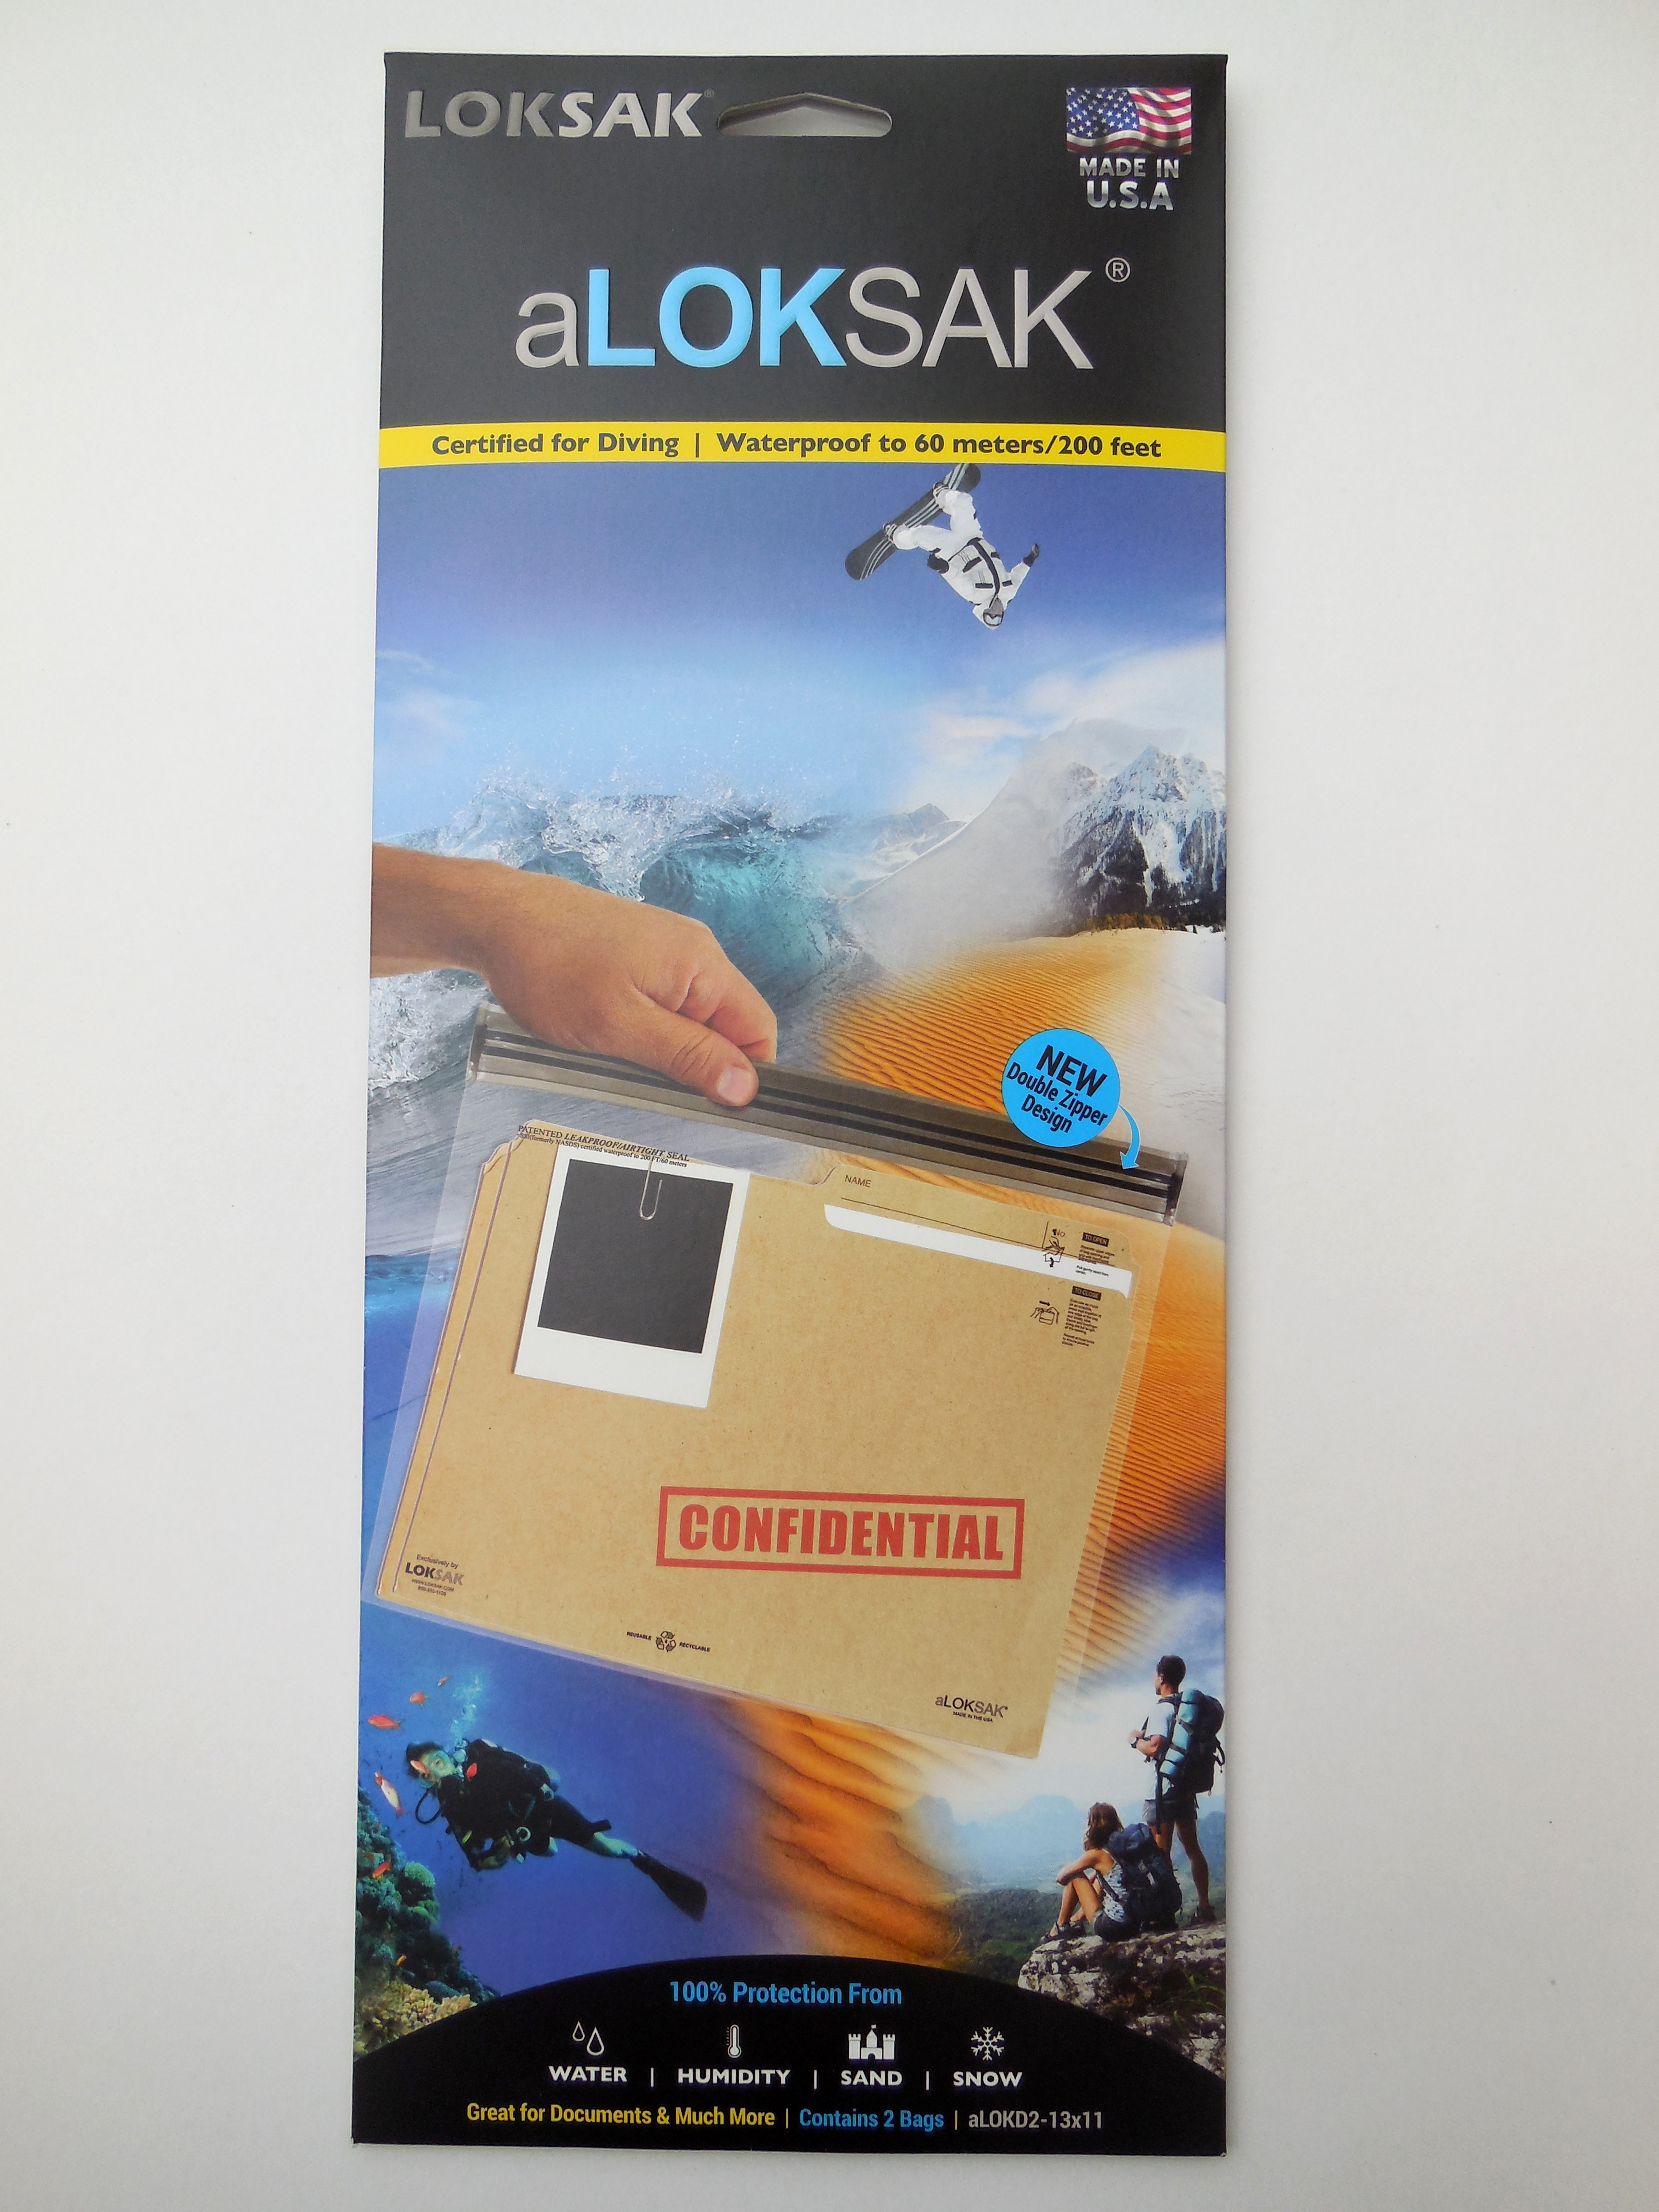 ALOKD2-13x11 - LOKSAK 2 each of 13.5